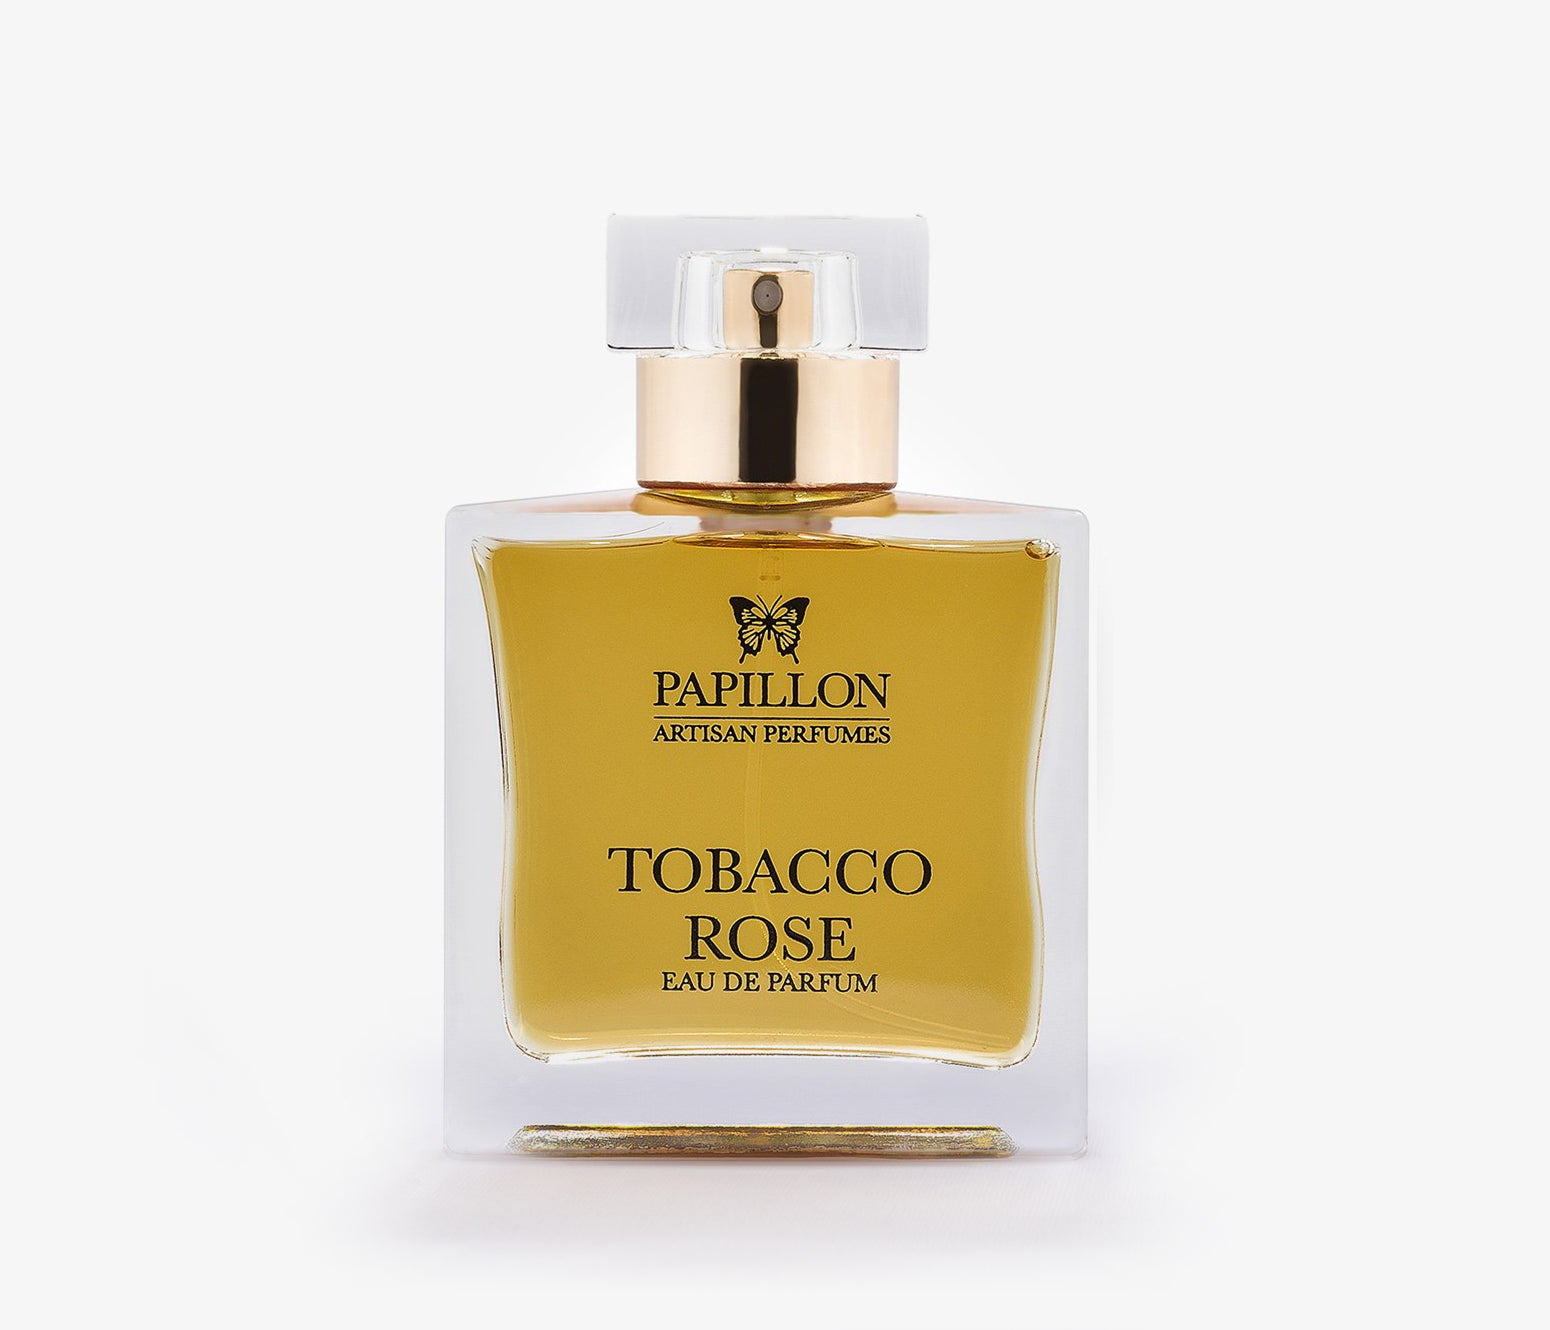 Papillon - Tobacco Rose - 50ml - QHR001 - Product Image - Fragrance - Les Senteurs